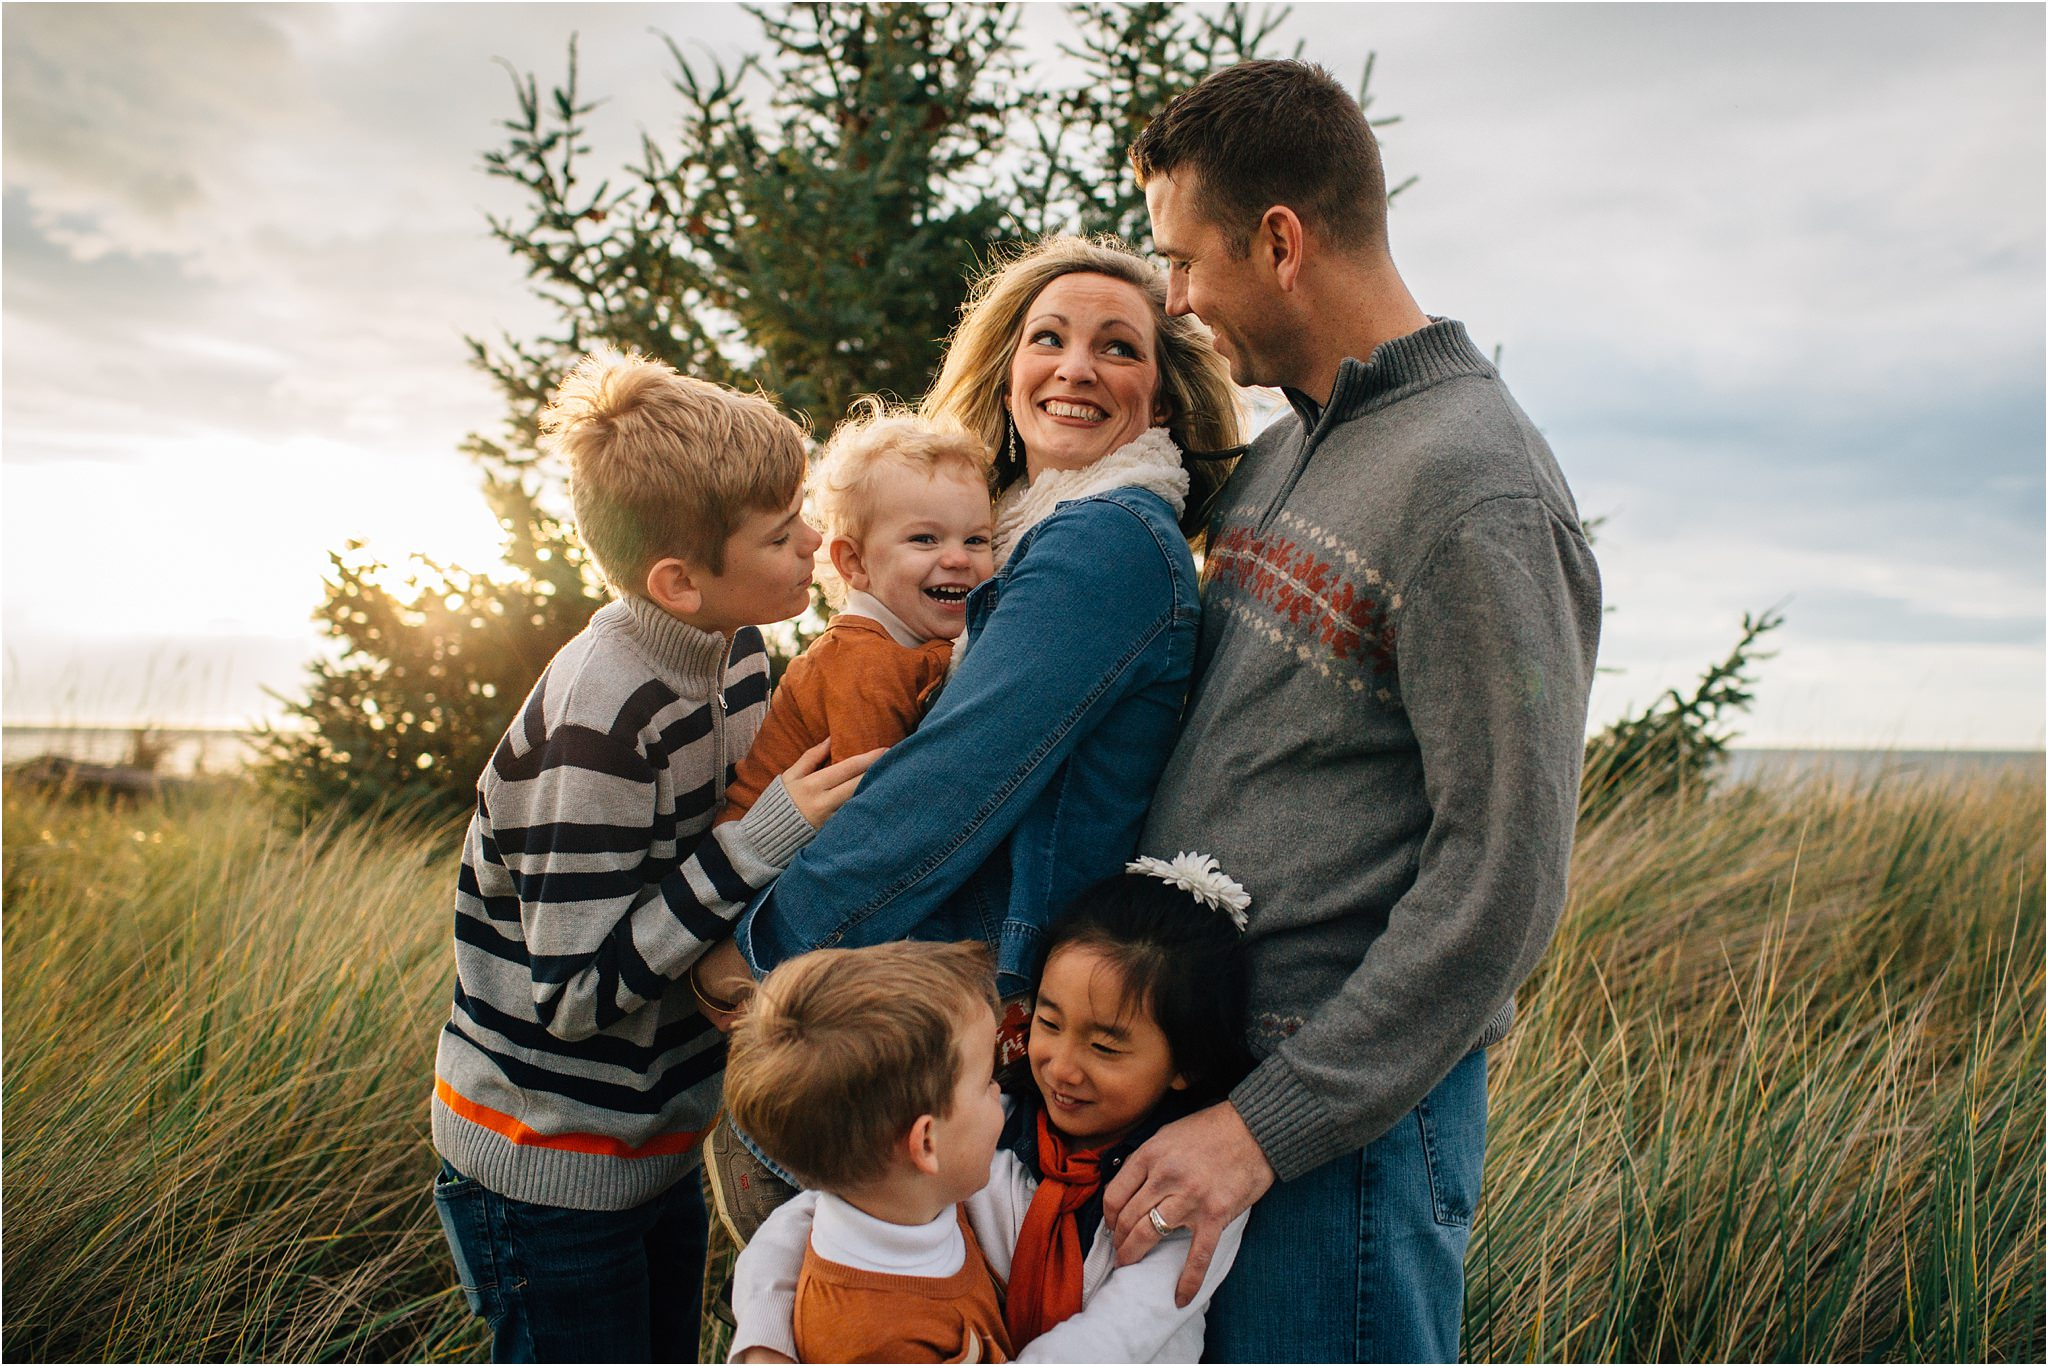 Whidbey-Island-Family-Photographer-Kara-Chappell-Photography_0027.jpg